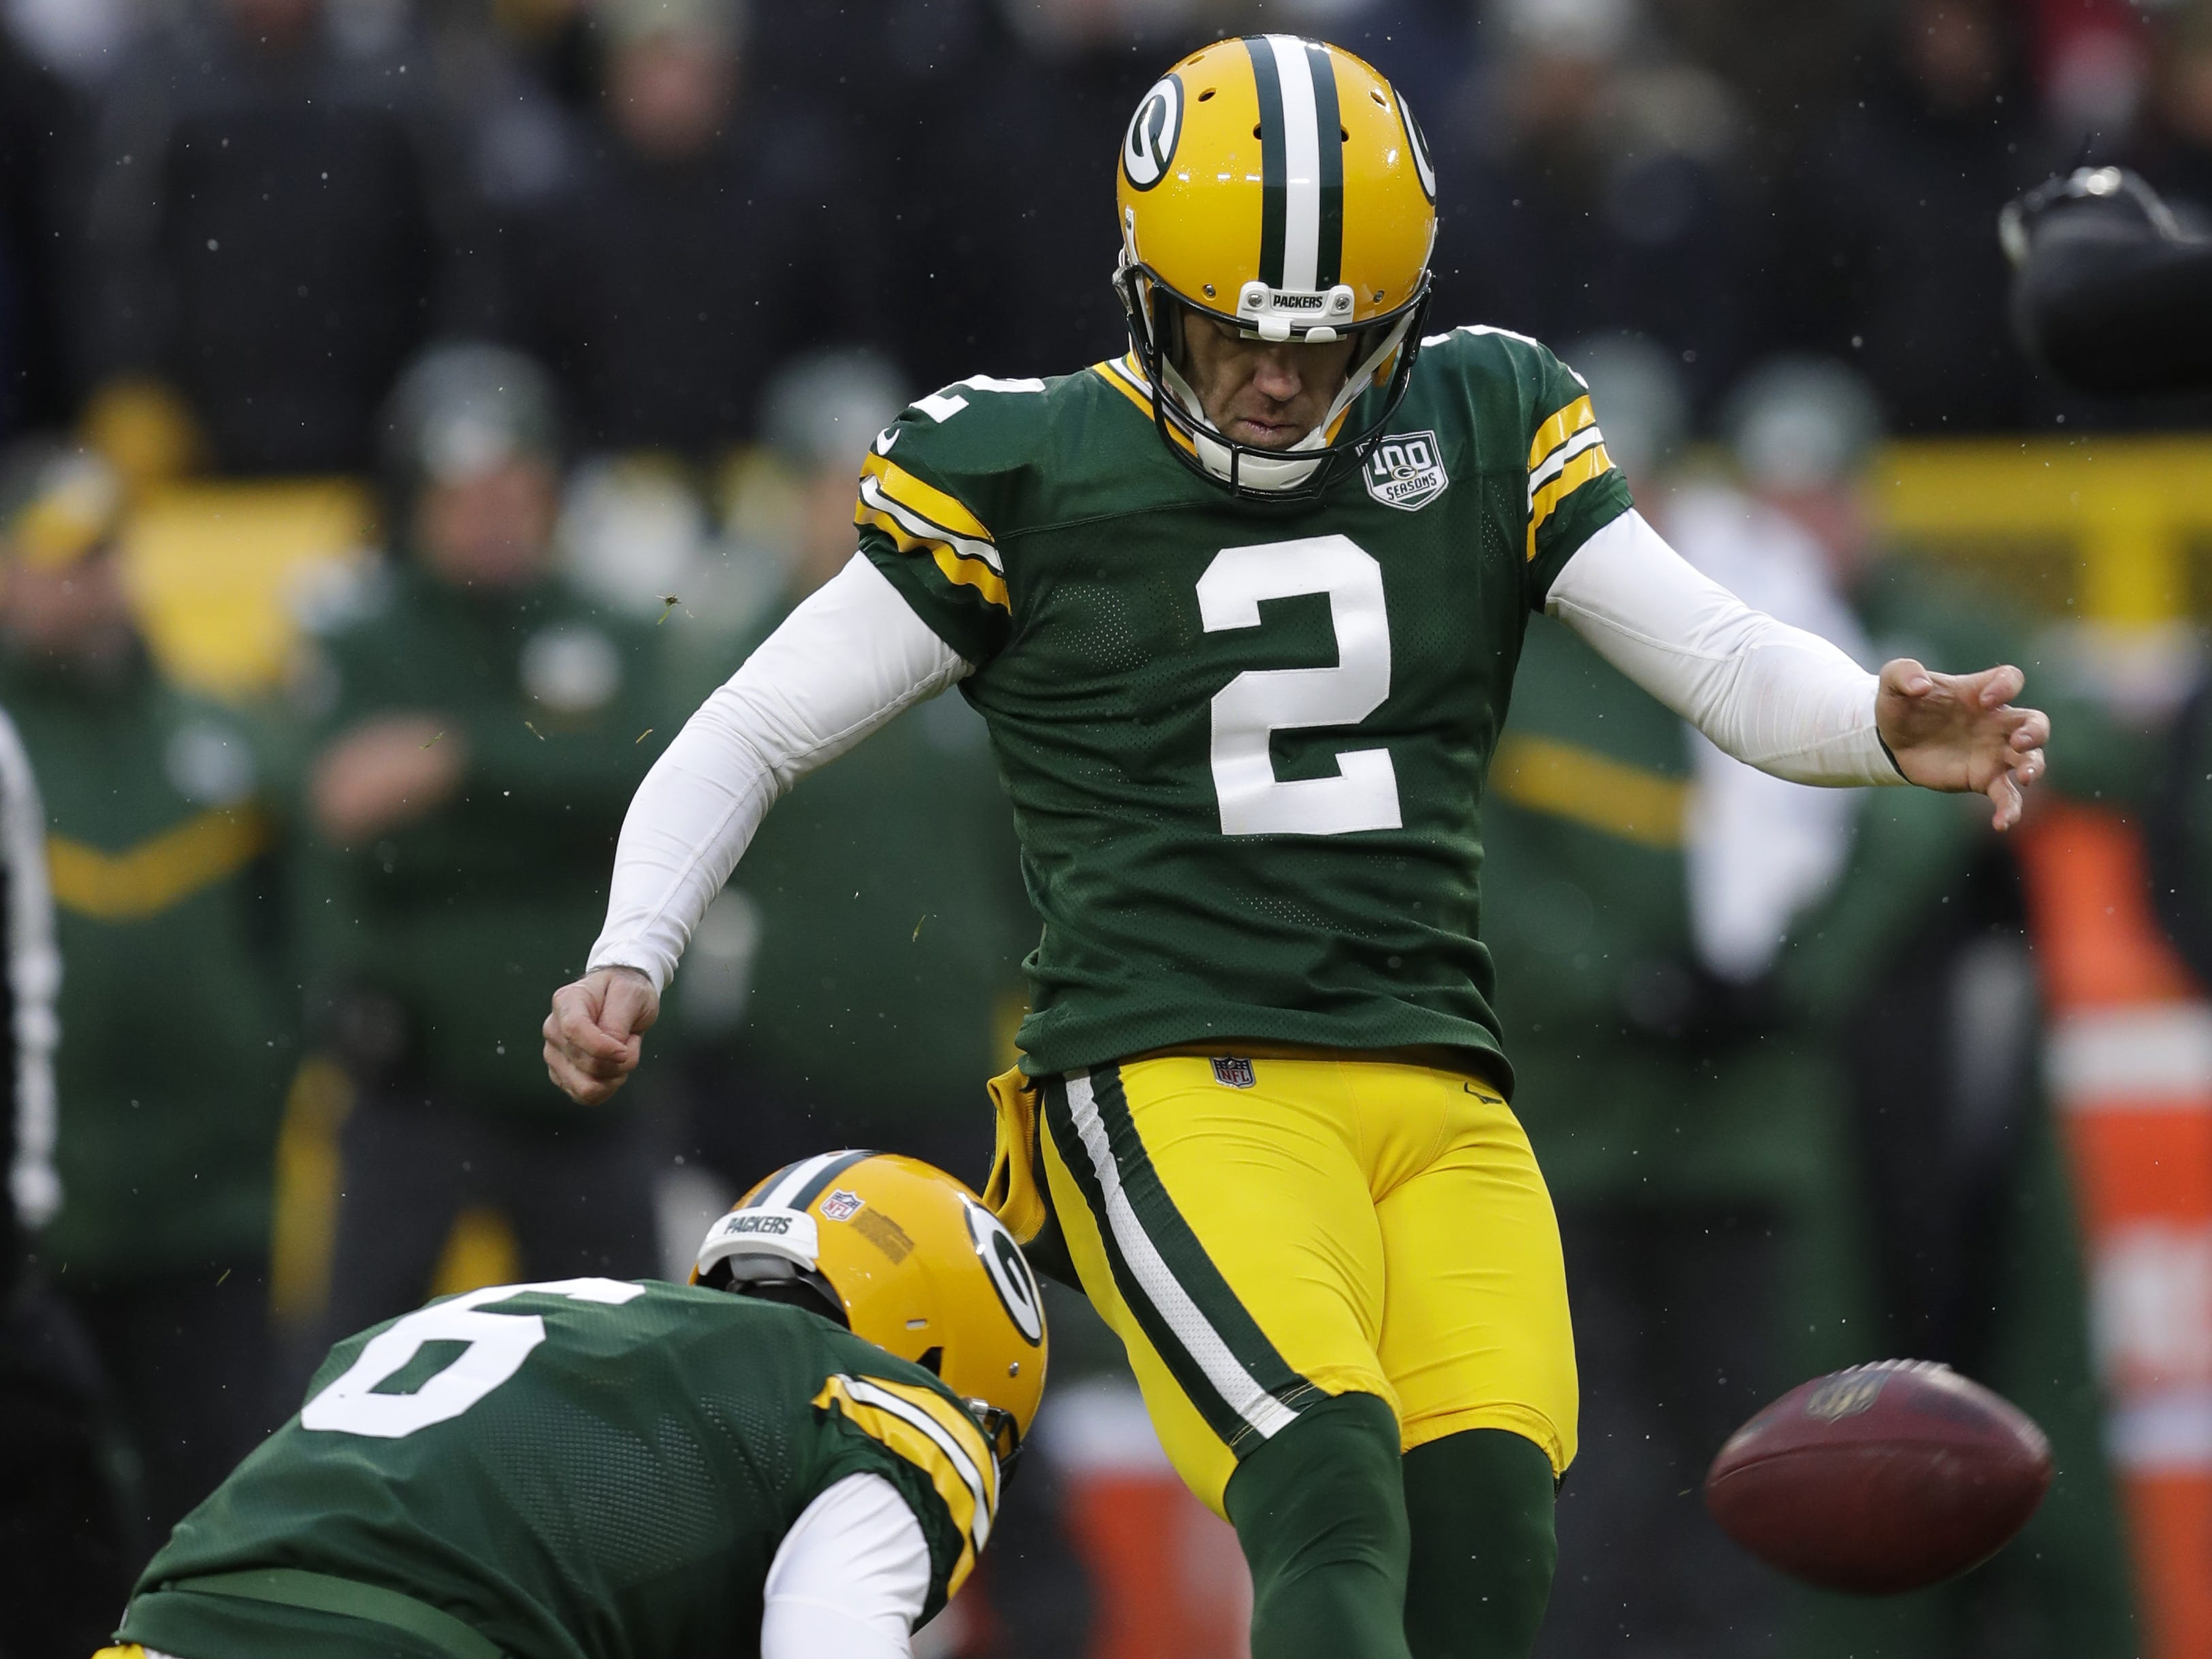 Green Bay Packers kicker Mason Crosby (2) misses the potential game-tying fieldgoal as time expires against the Arizona Cardinals Sunday, December 2, 2018, at Lambeau Field in Green Bay, Wis.  Dan Powers/USA TODAY NETWORK-Wisconsin